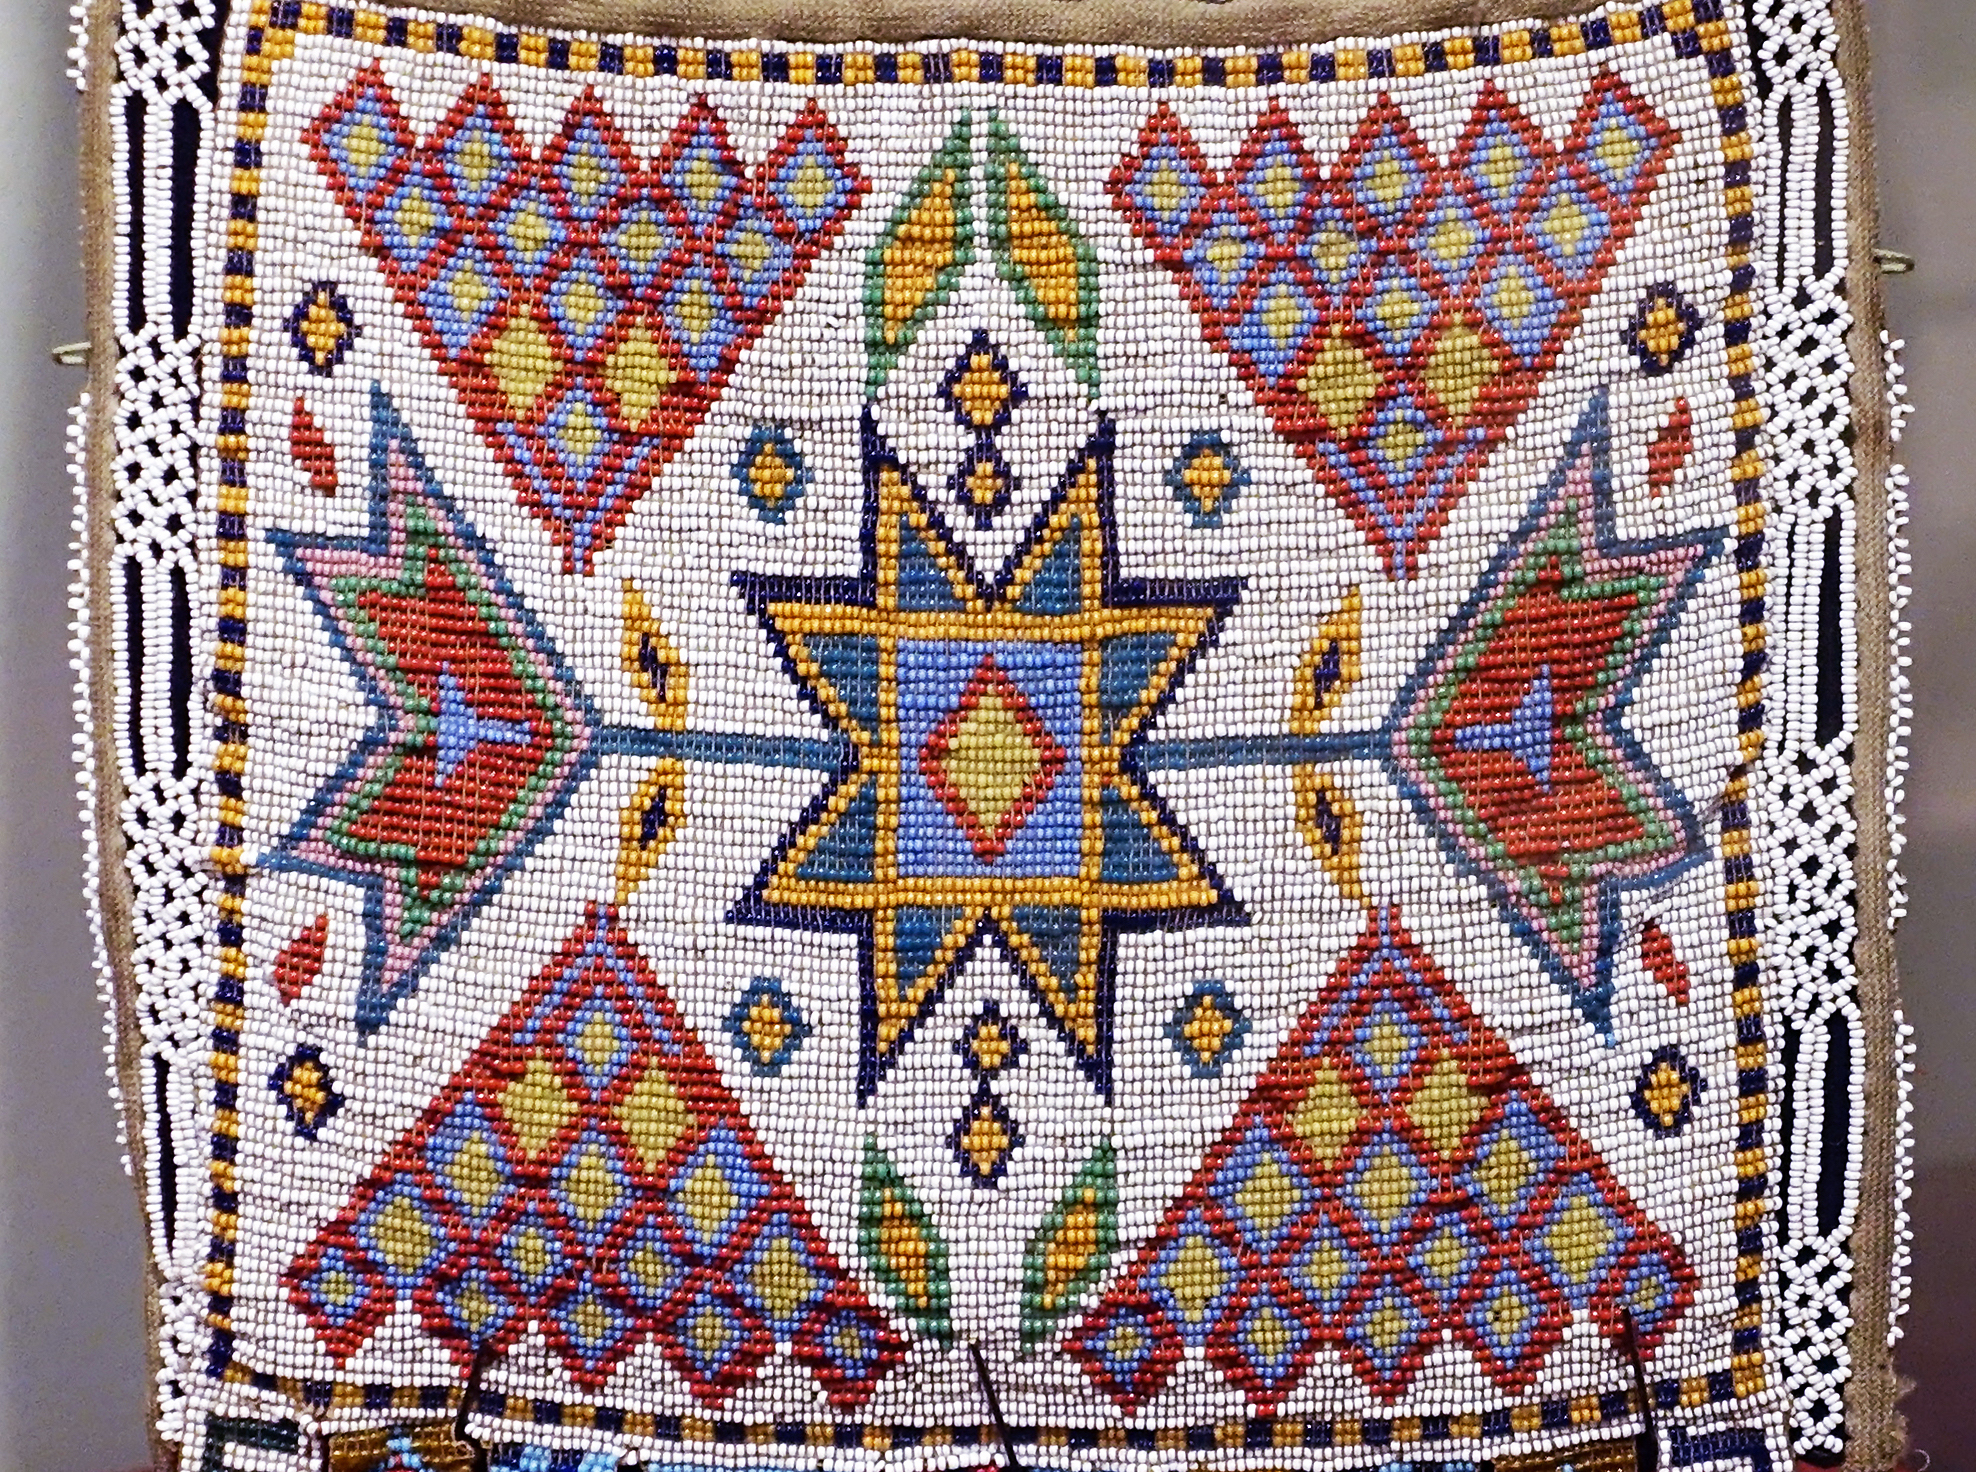 Detail, Bandolier Bag, Western Great Lakes, late 19th century, broadcloth, wool, cotton, beads, brass buttons